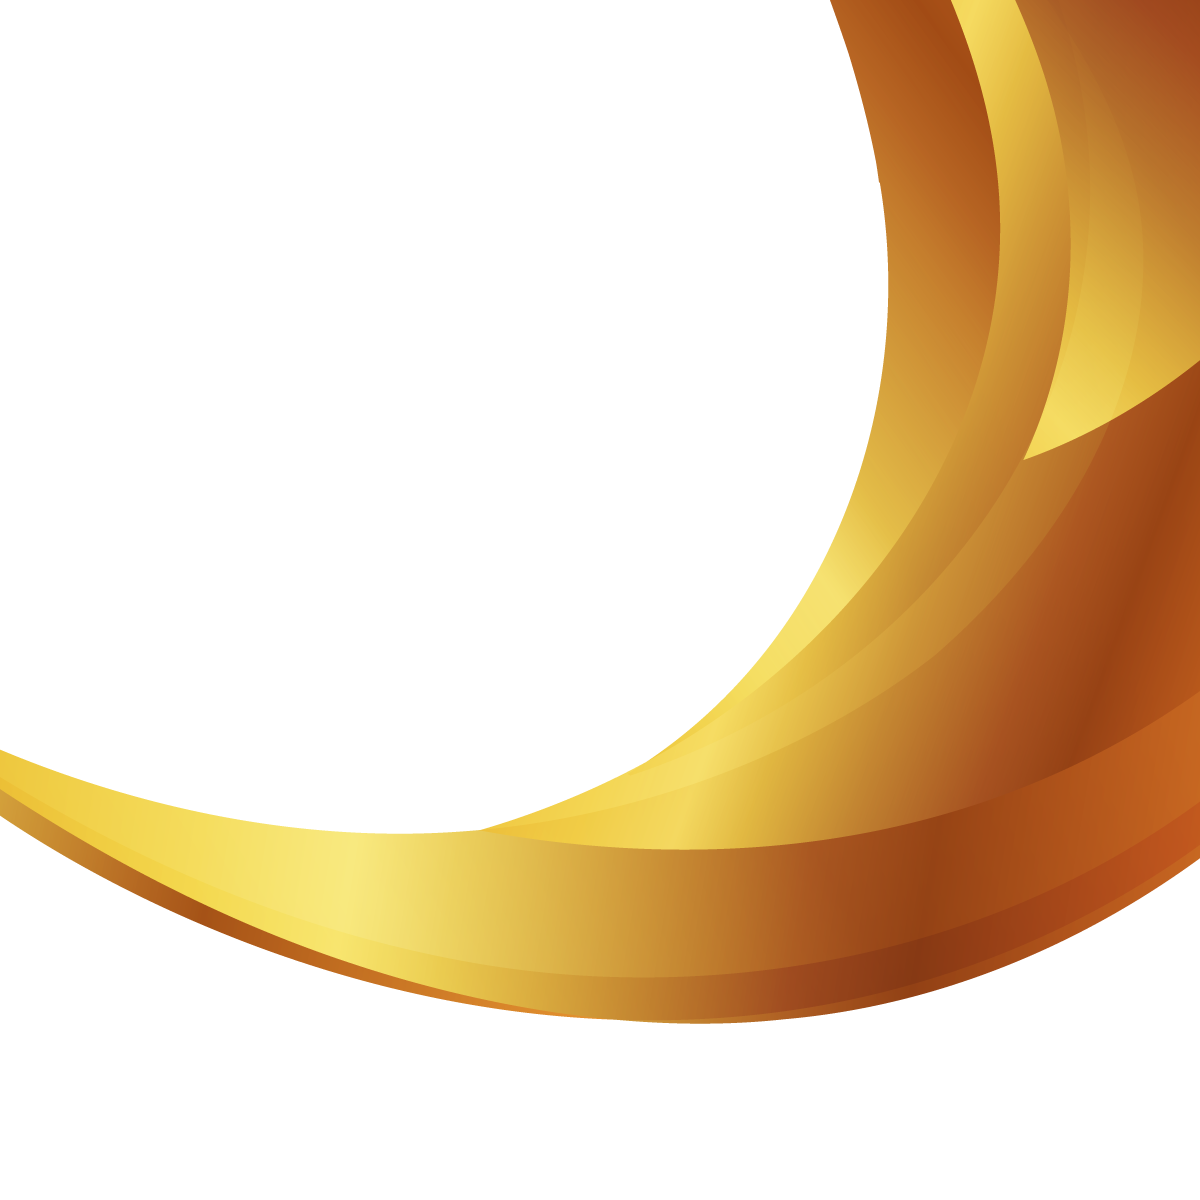 Free gold png backgrounds. Vector background transprent download